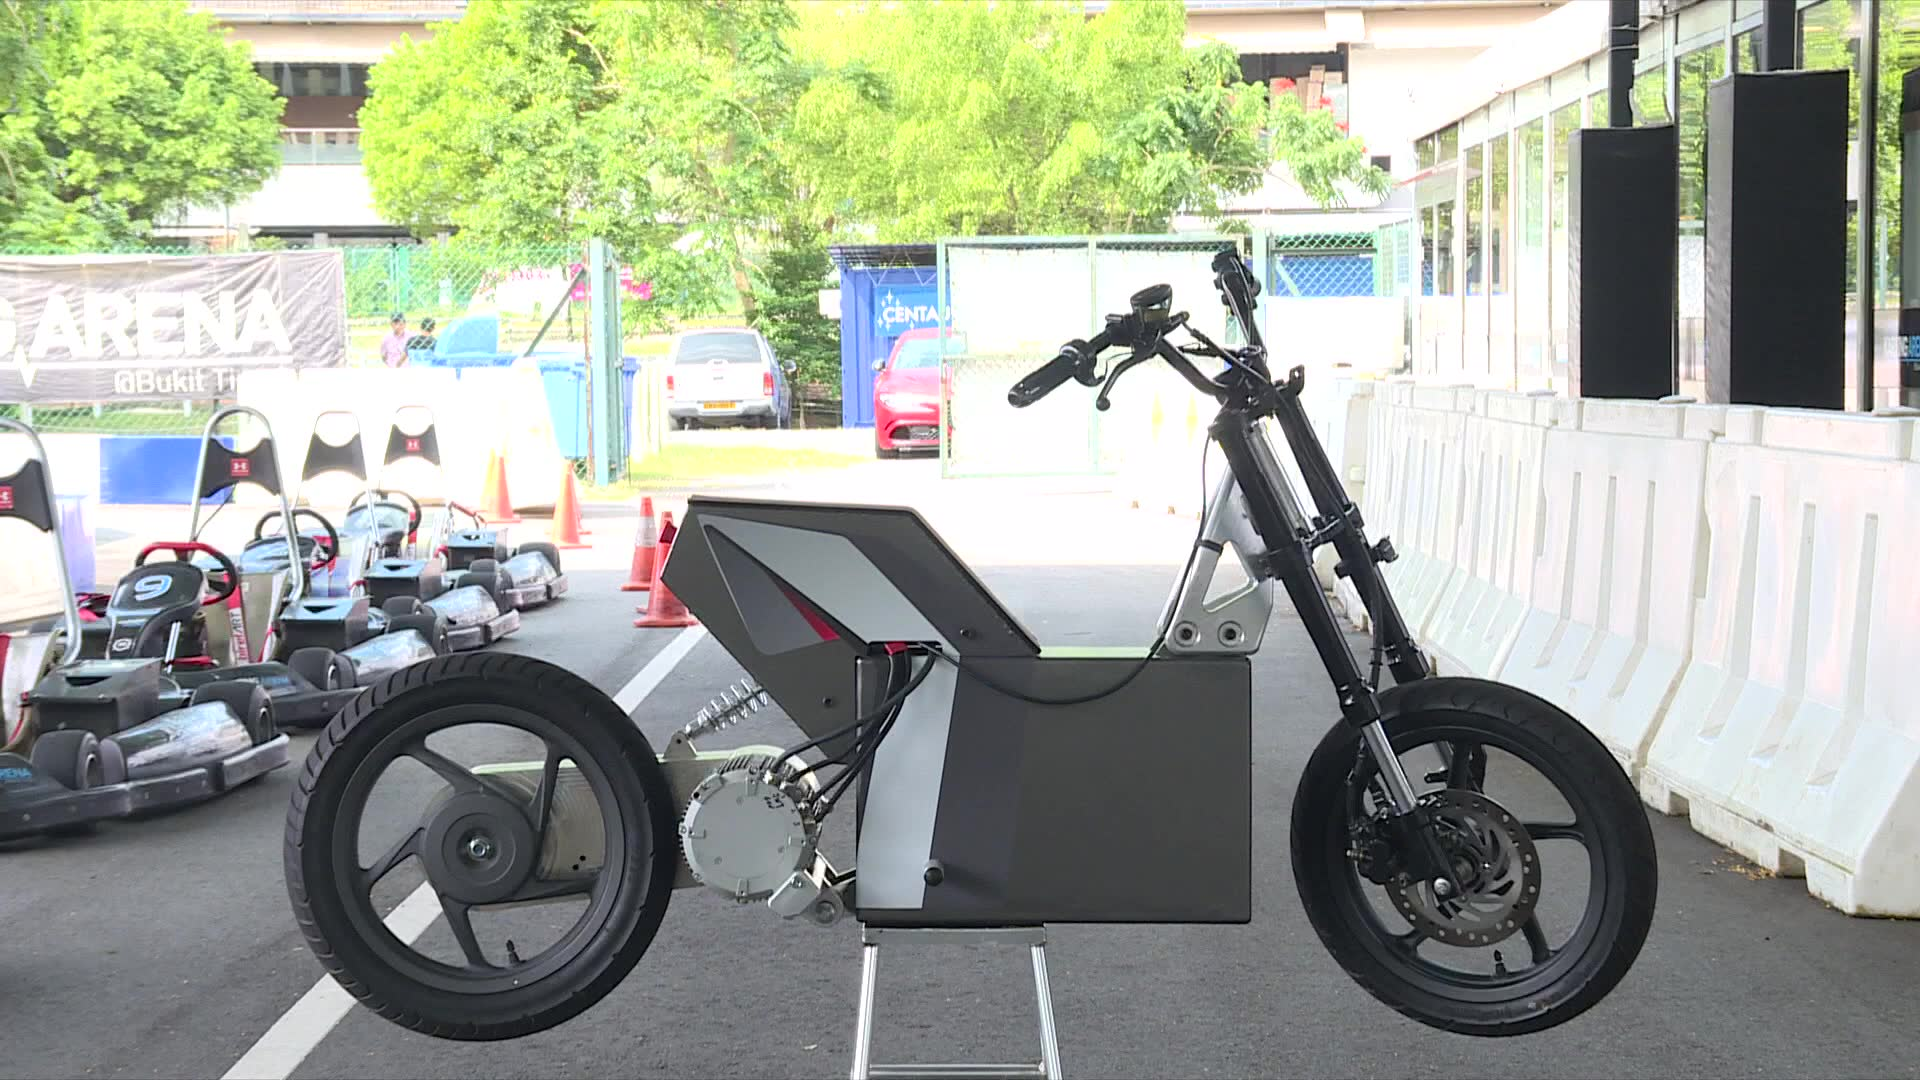 Electric motorcycles could hit roads by Q1 2020 | Video